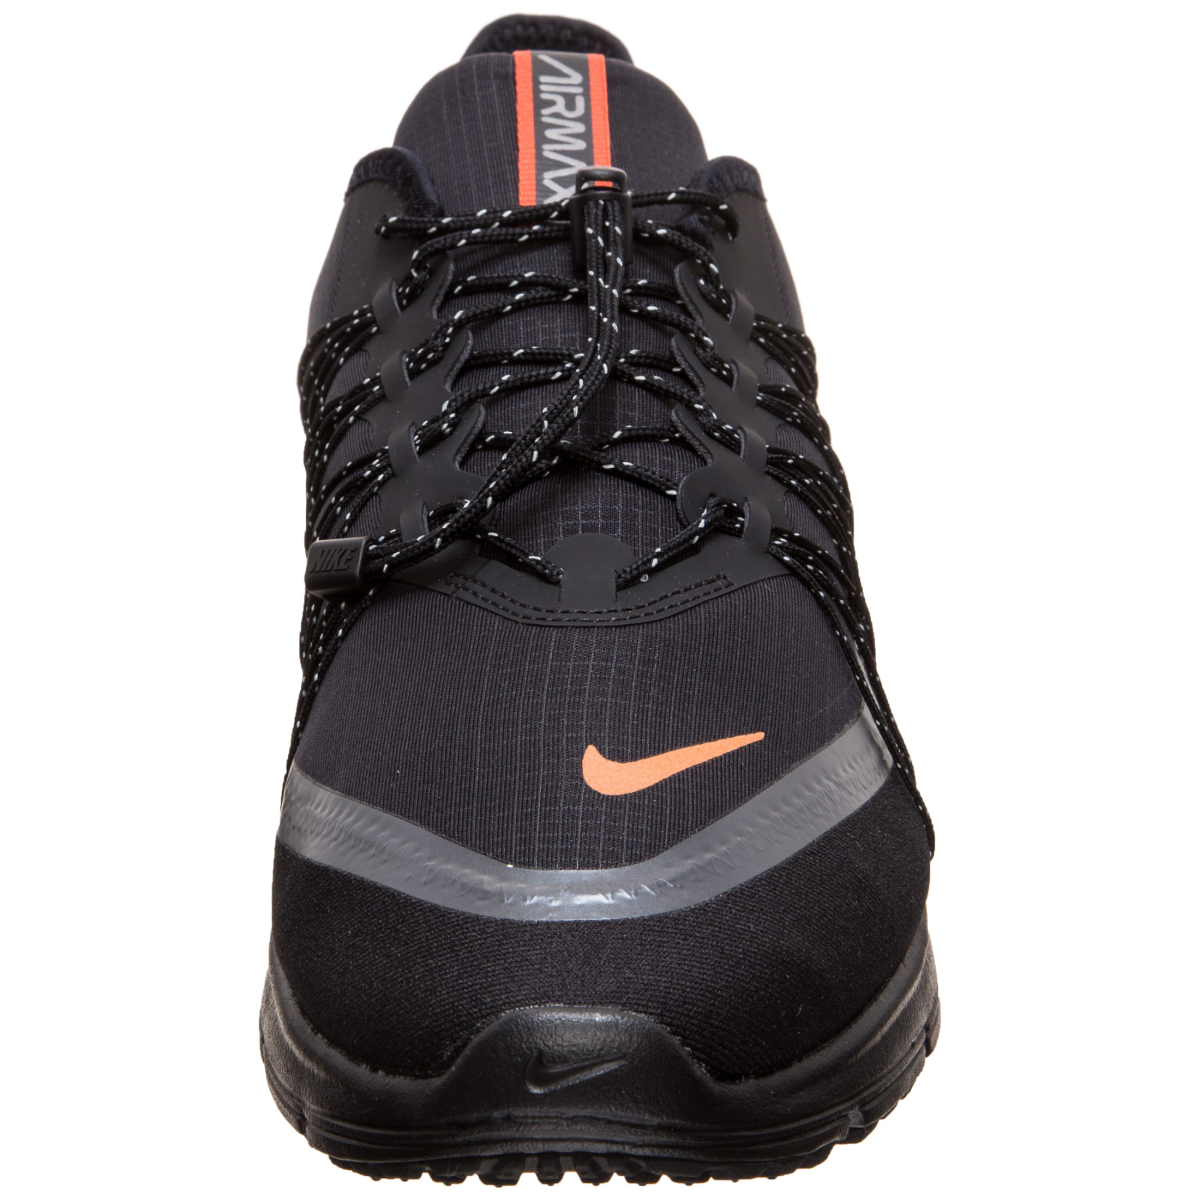 Nike Air Max Sequent 4 in schwarz AV3236 007 | everysize